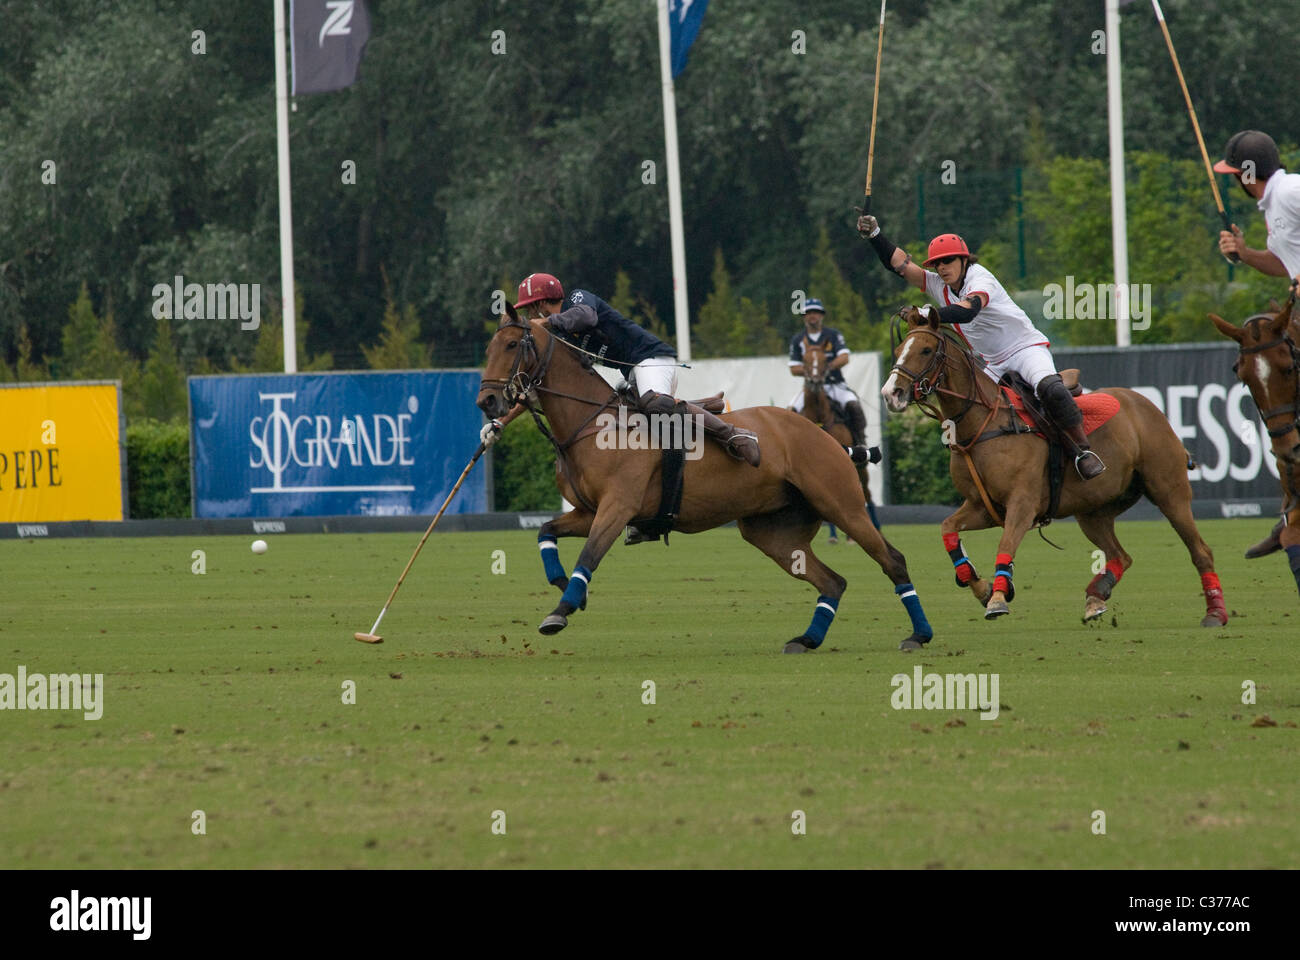 Polo players chasing ball during match - Stock Image